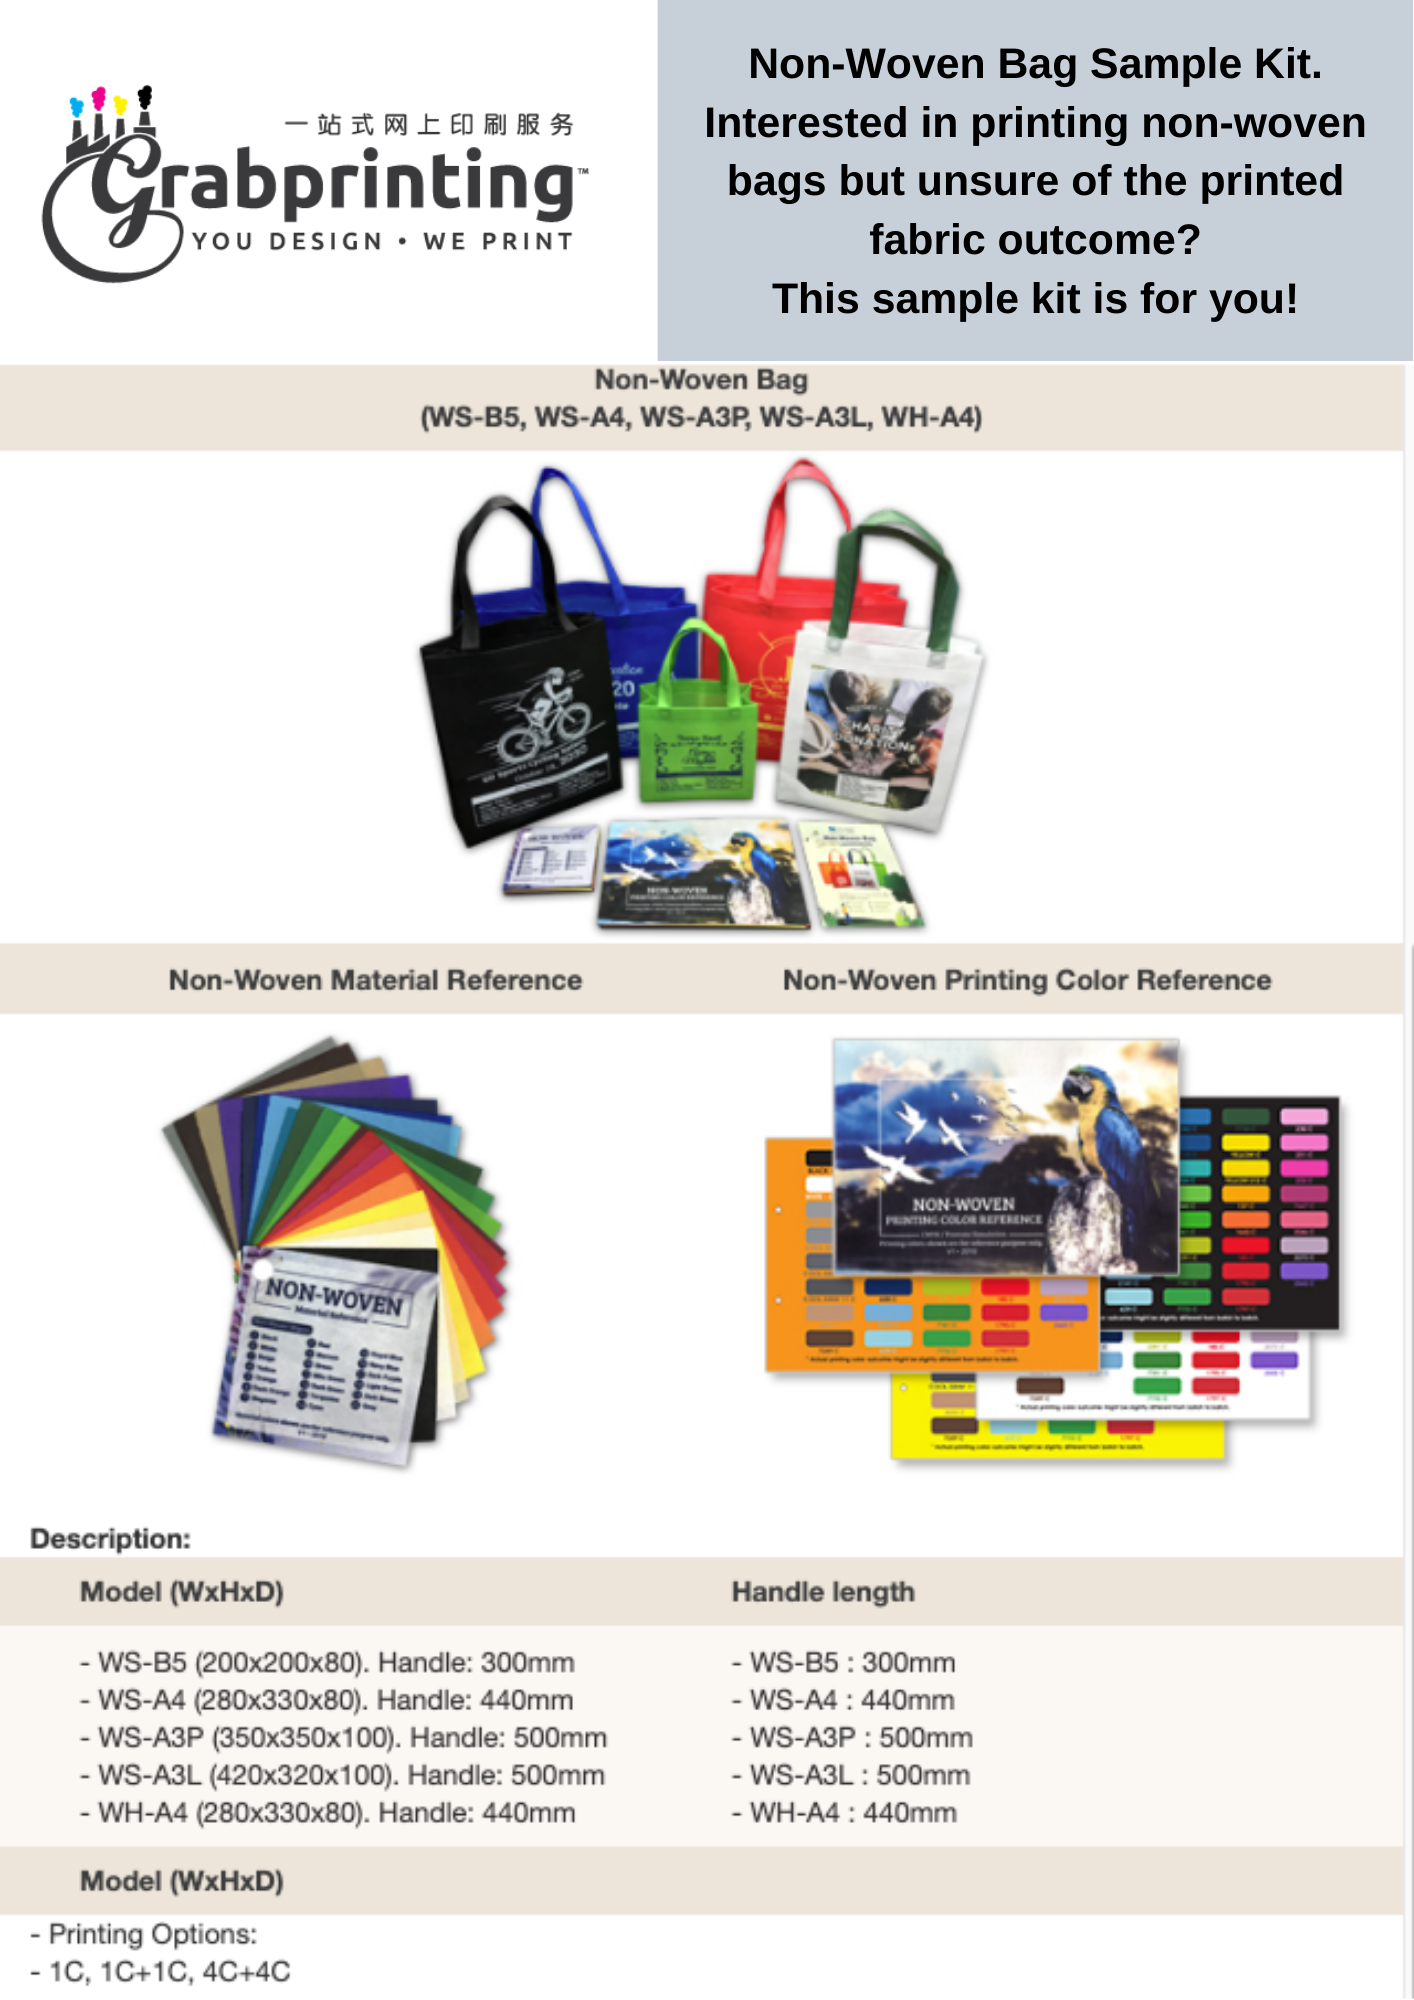 Non woven bag sample kit Non Woven Bag Sample Kit flyer size